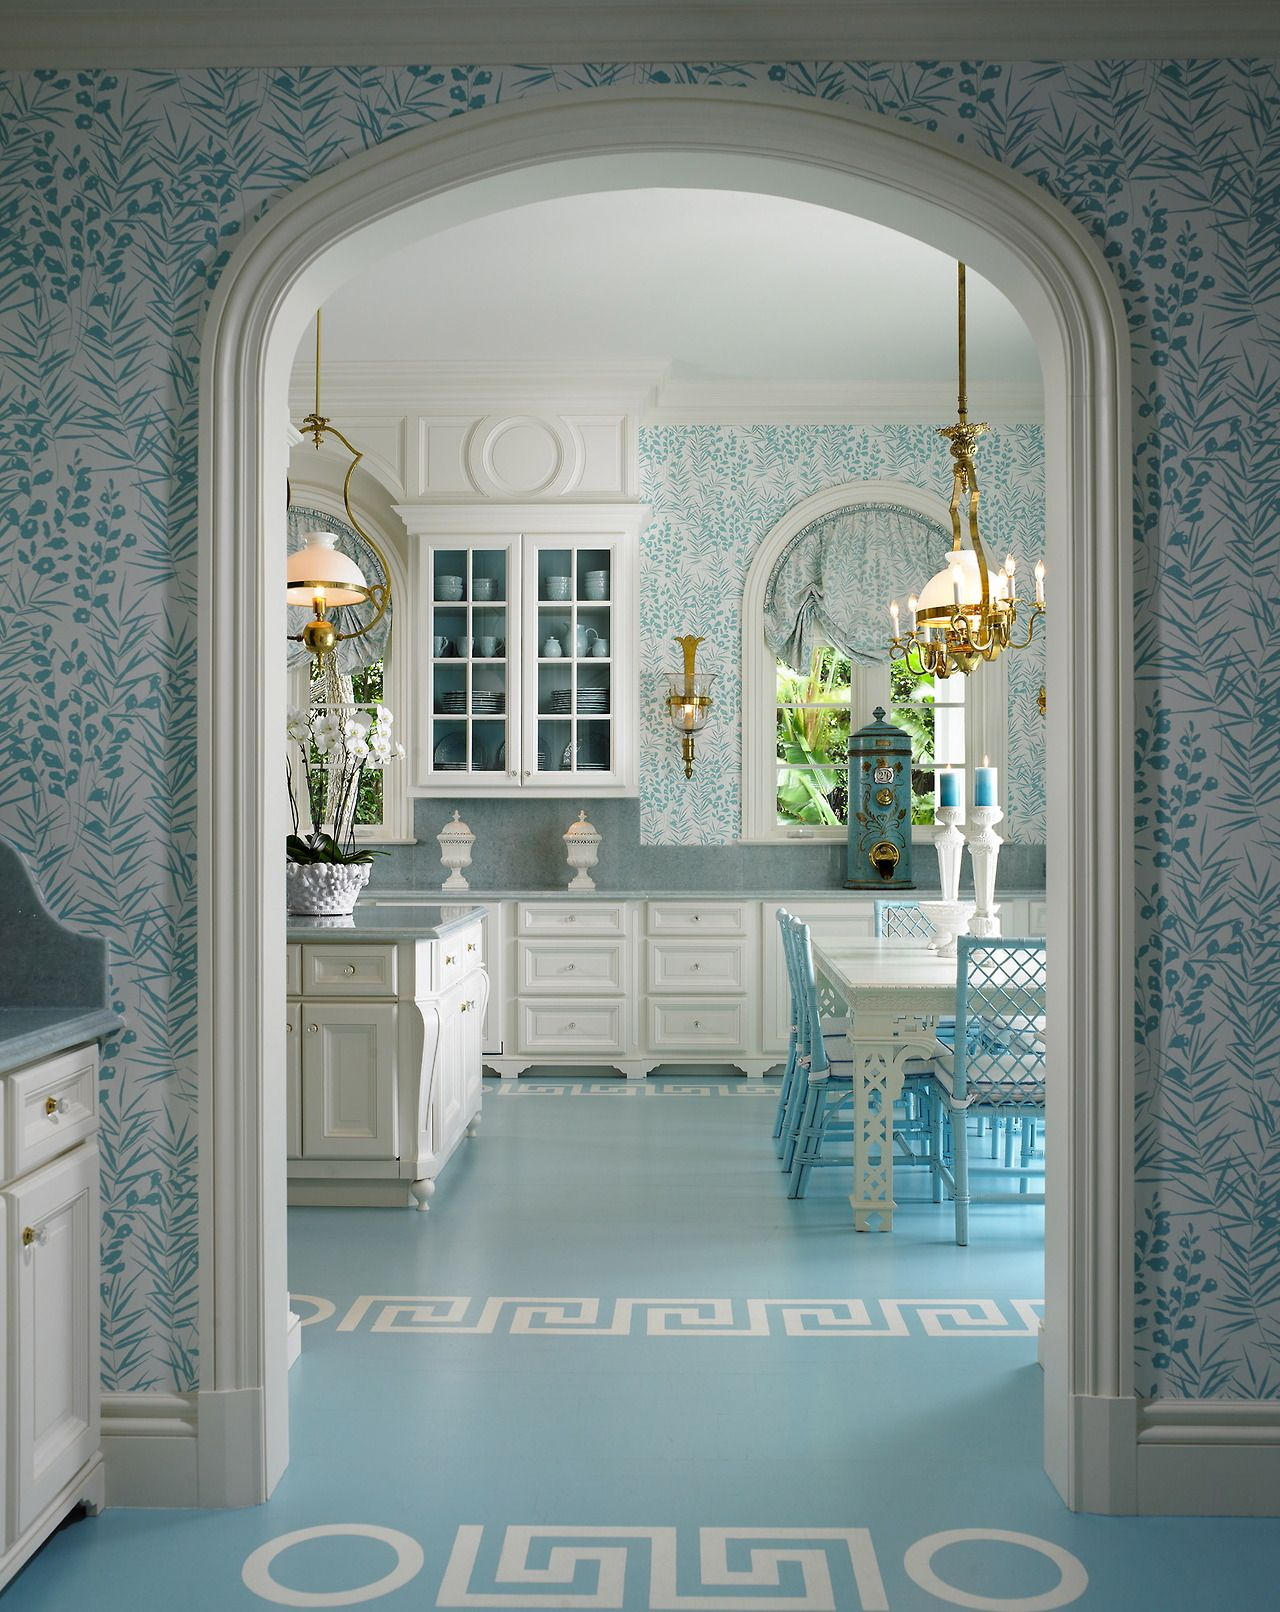 Scott Snyder, Inc | Kitchen | Pinterest | Wall papers, Arch and Kitchens